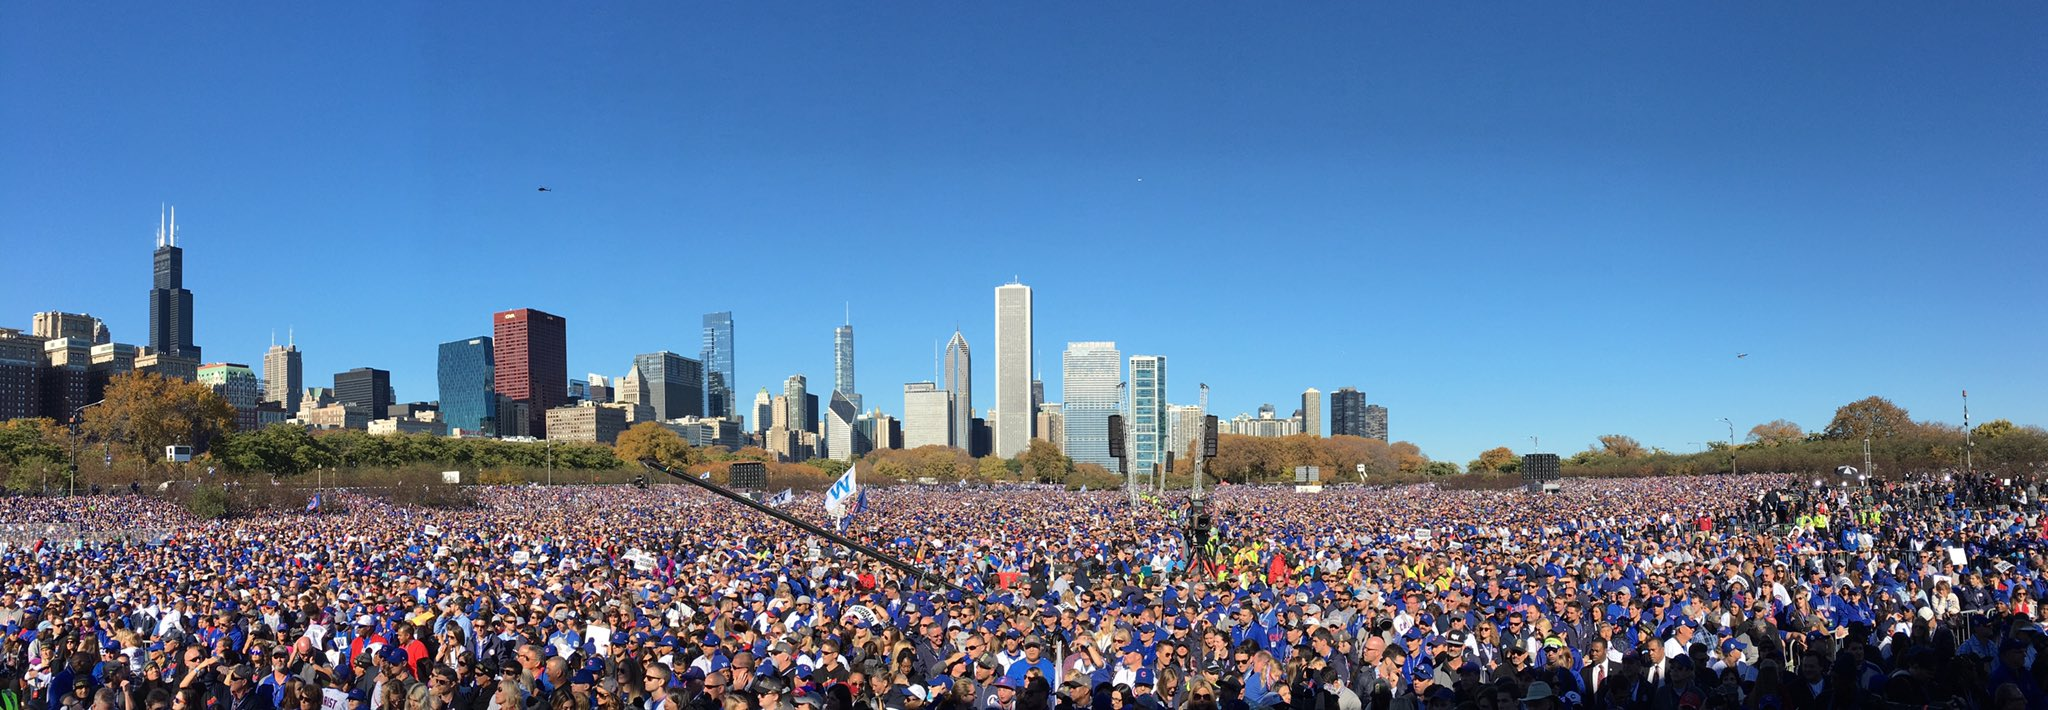 5 million Chicago Cubs fans celebrate the first World Series victory in their lifetimes.